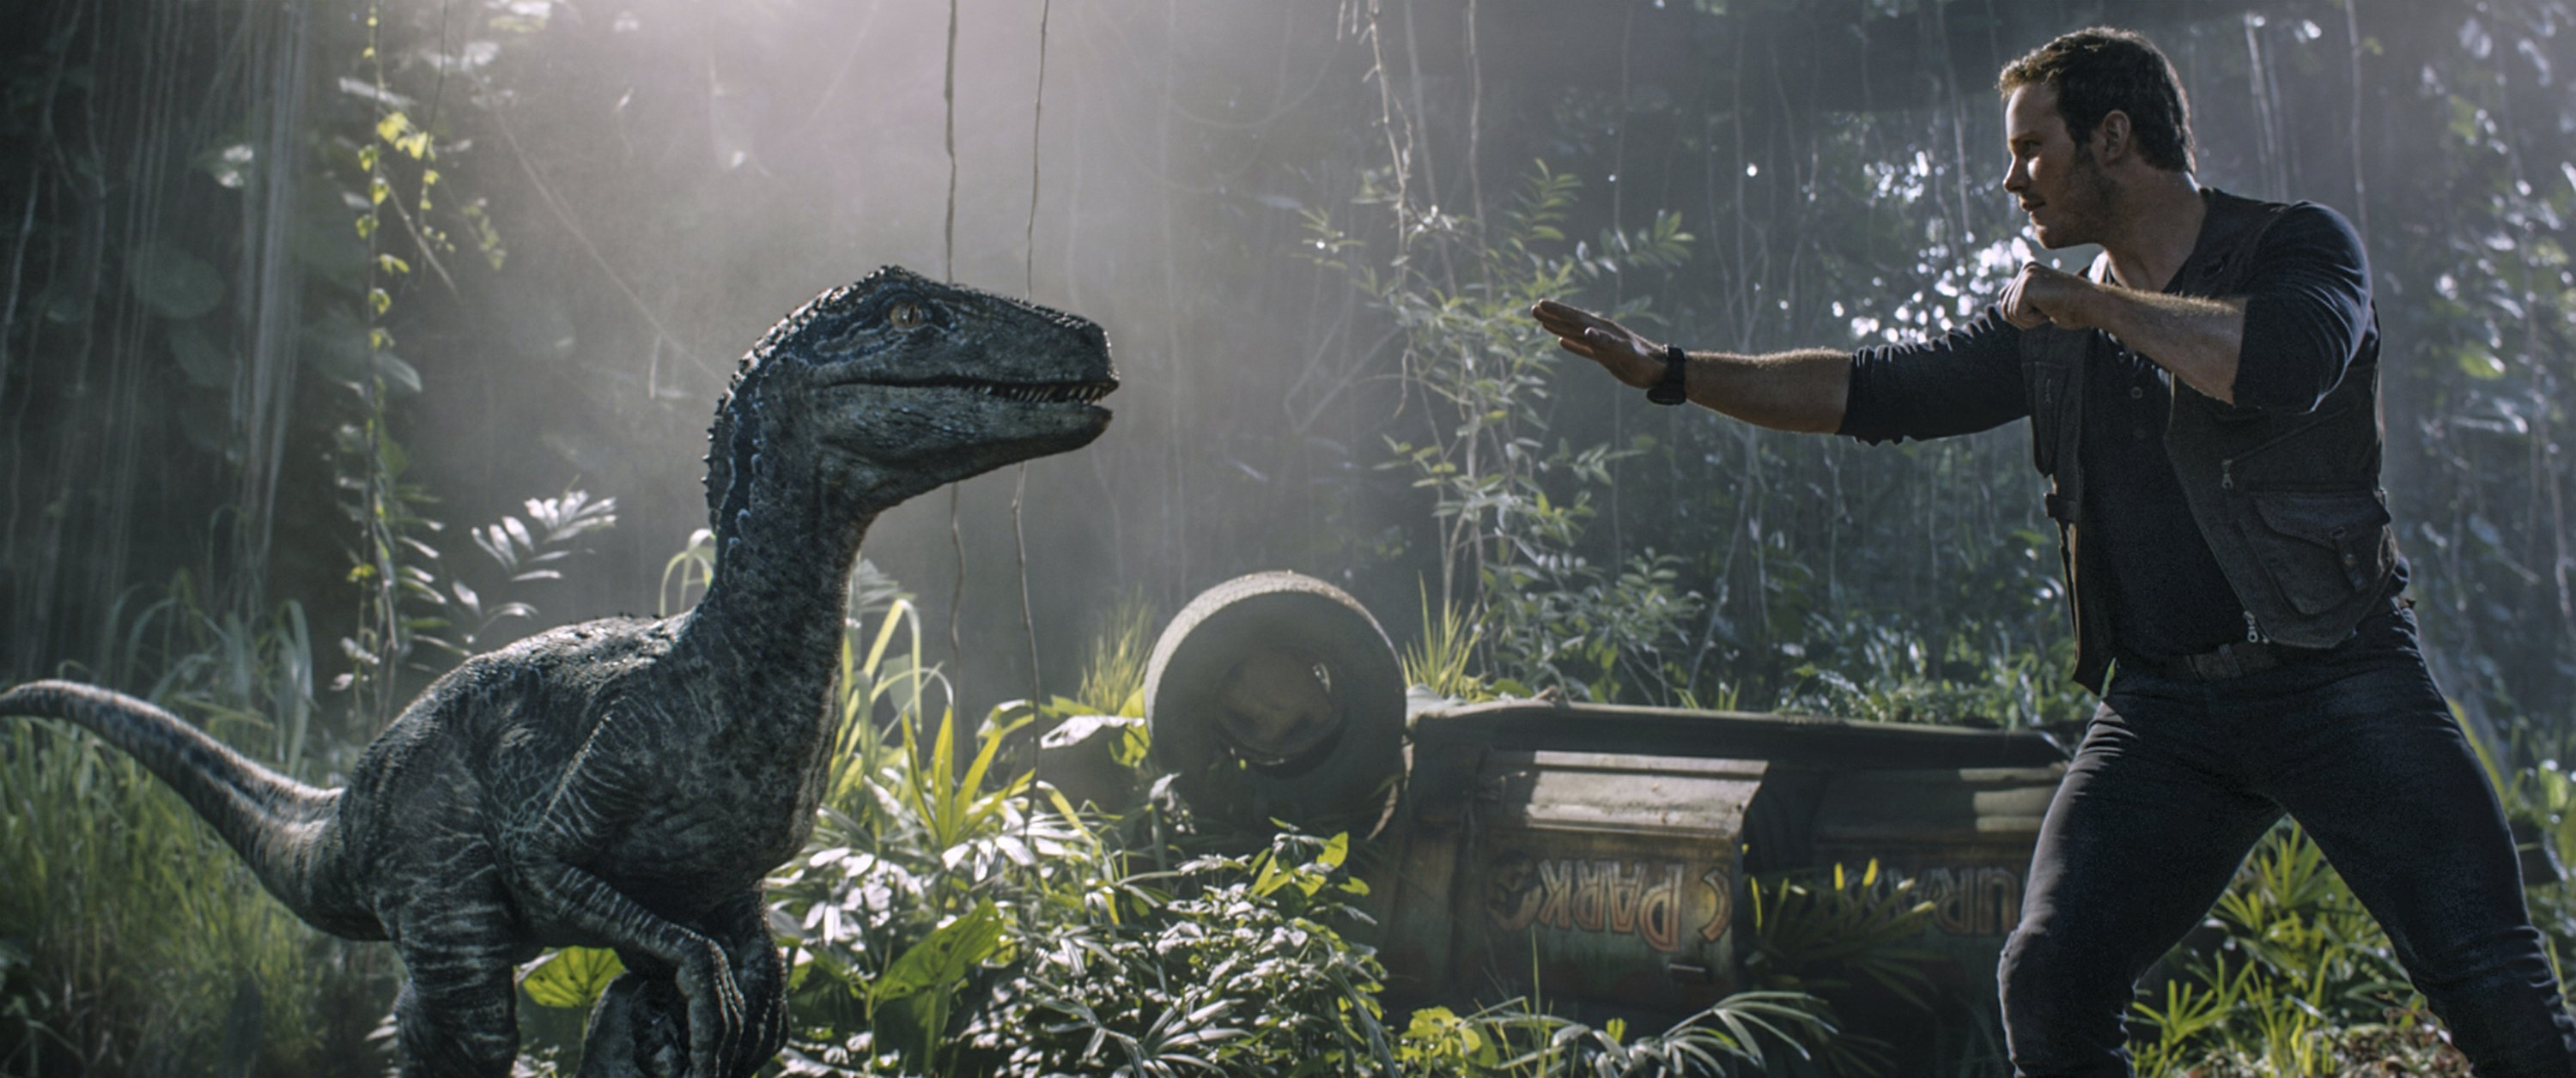 Box Office World Box Office Top 20 Jurassic World Debuts With 148m